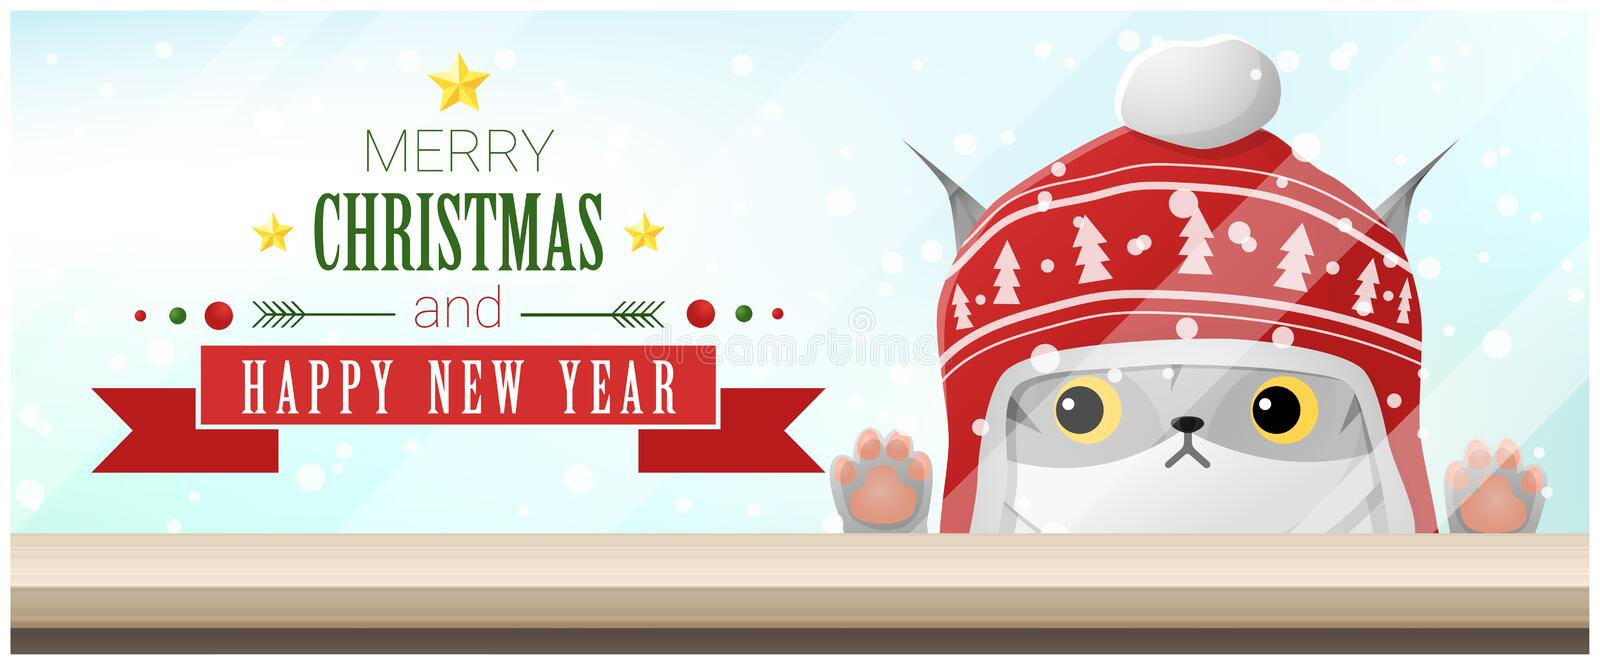 Merry Christmas and Happy New Year background with cat looking at empty table top stock illustration